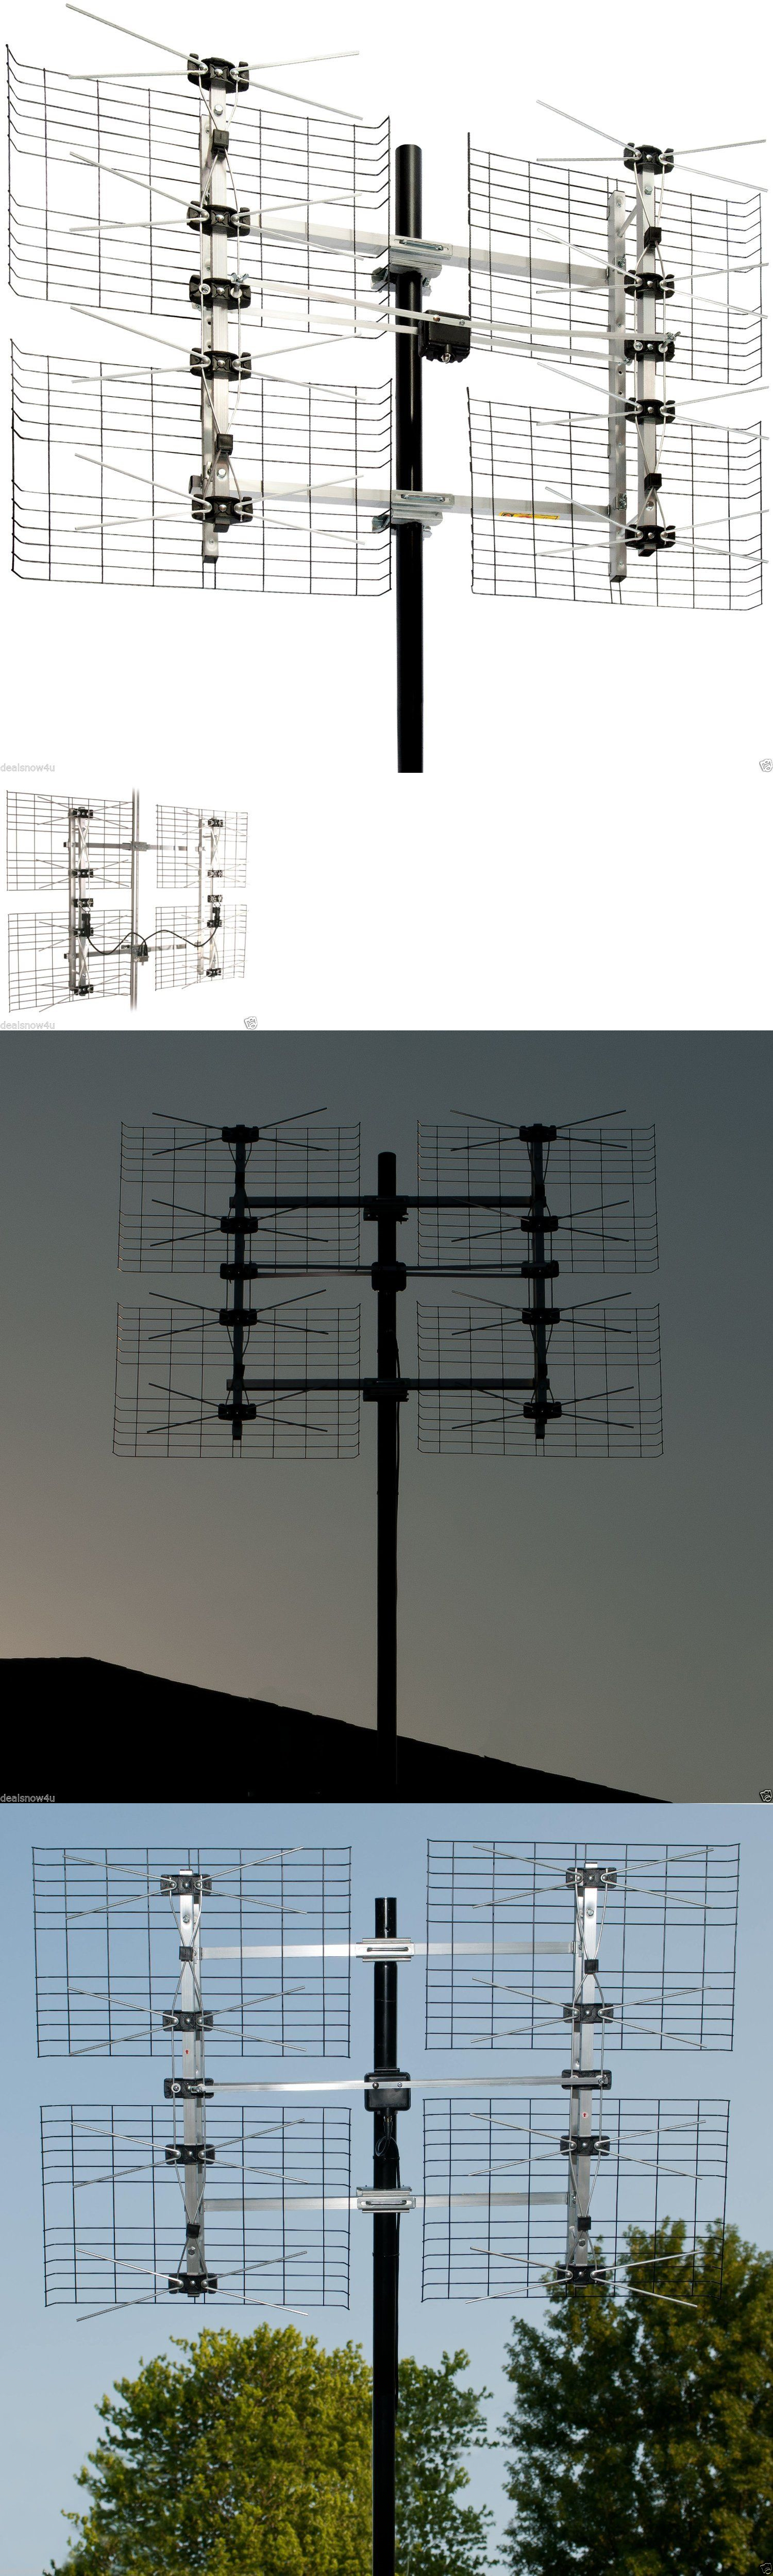 Antennas and Dishes Antenna Db8 Multi Directional Hdtv Tv Over Air Attic Outdoor Roof Mount & Antennas and Dishes: Antenna Db8 Multi Directional Hdtv Tv Over Air ...